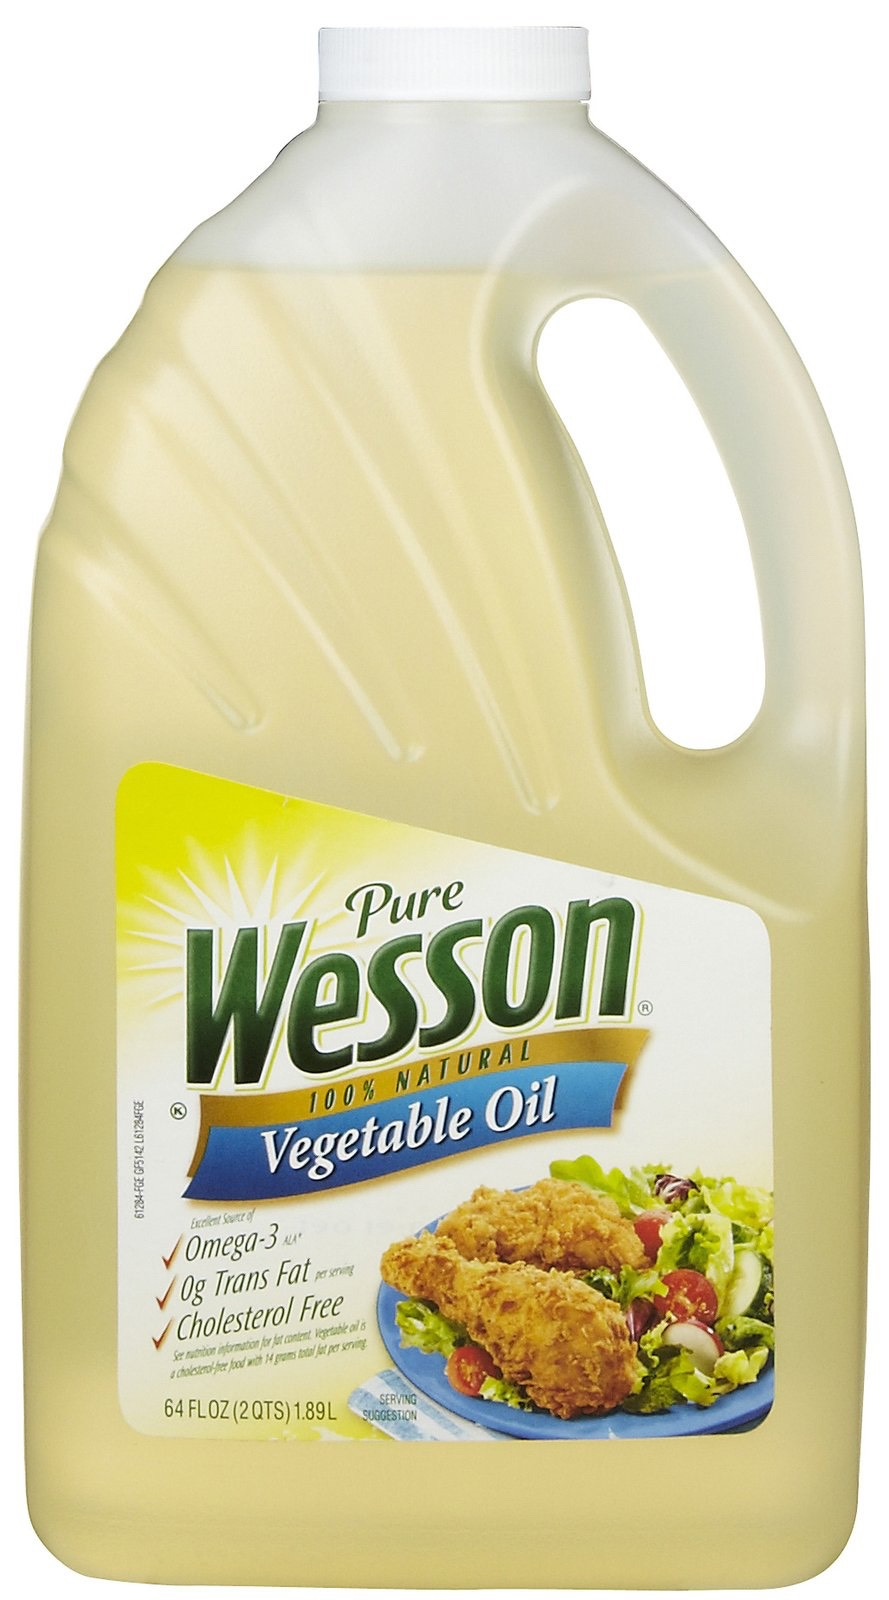 1/4 cup of vegetable or canola oil